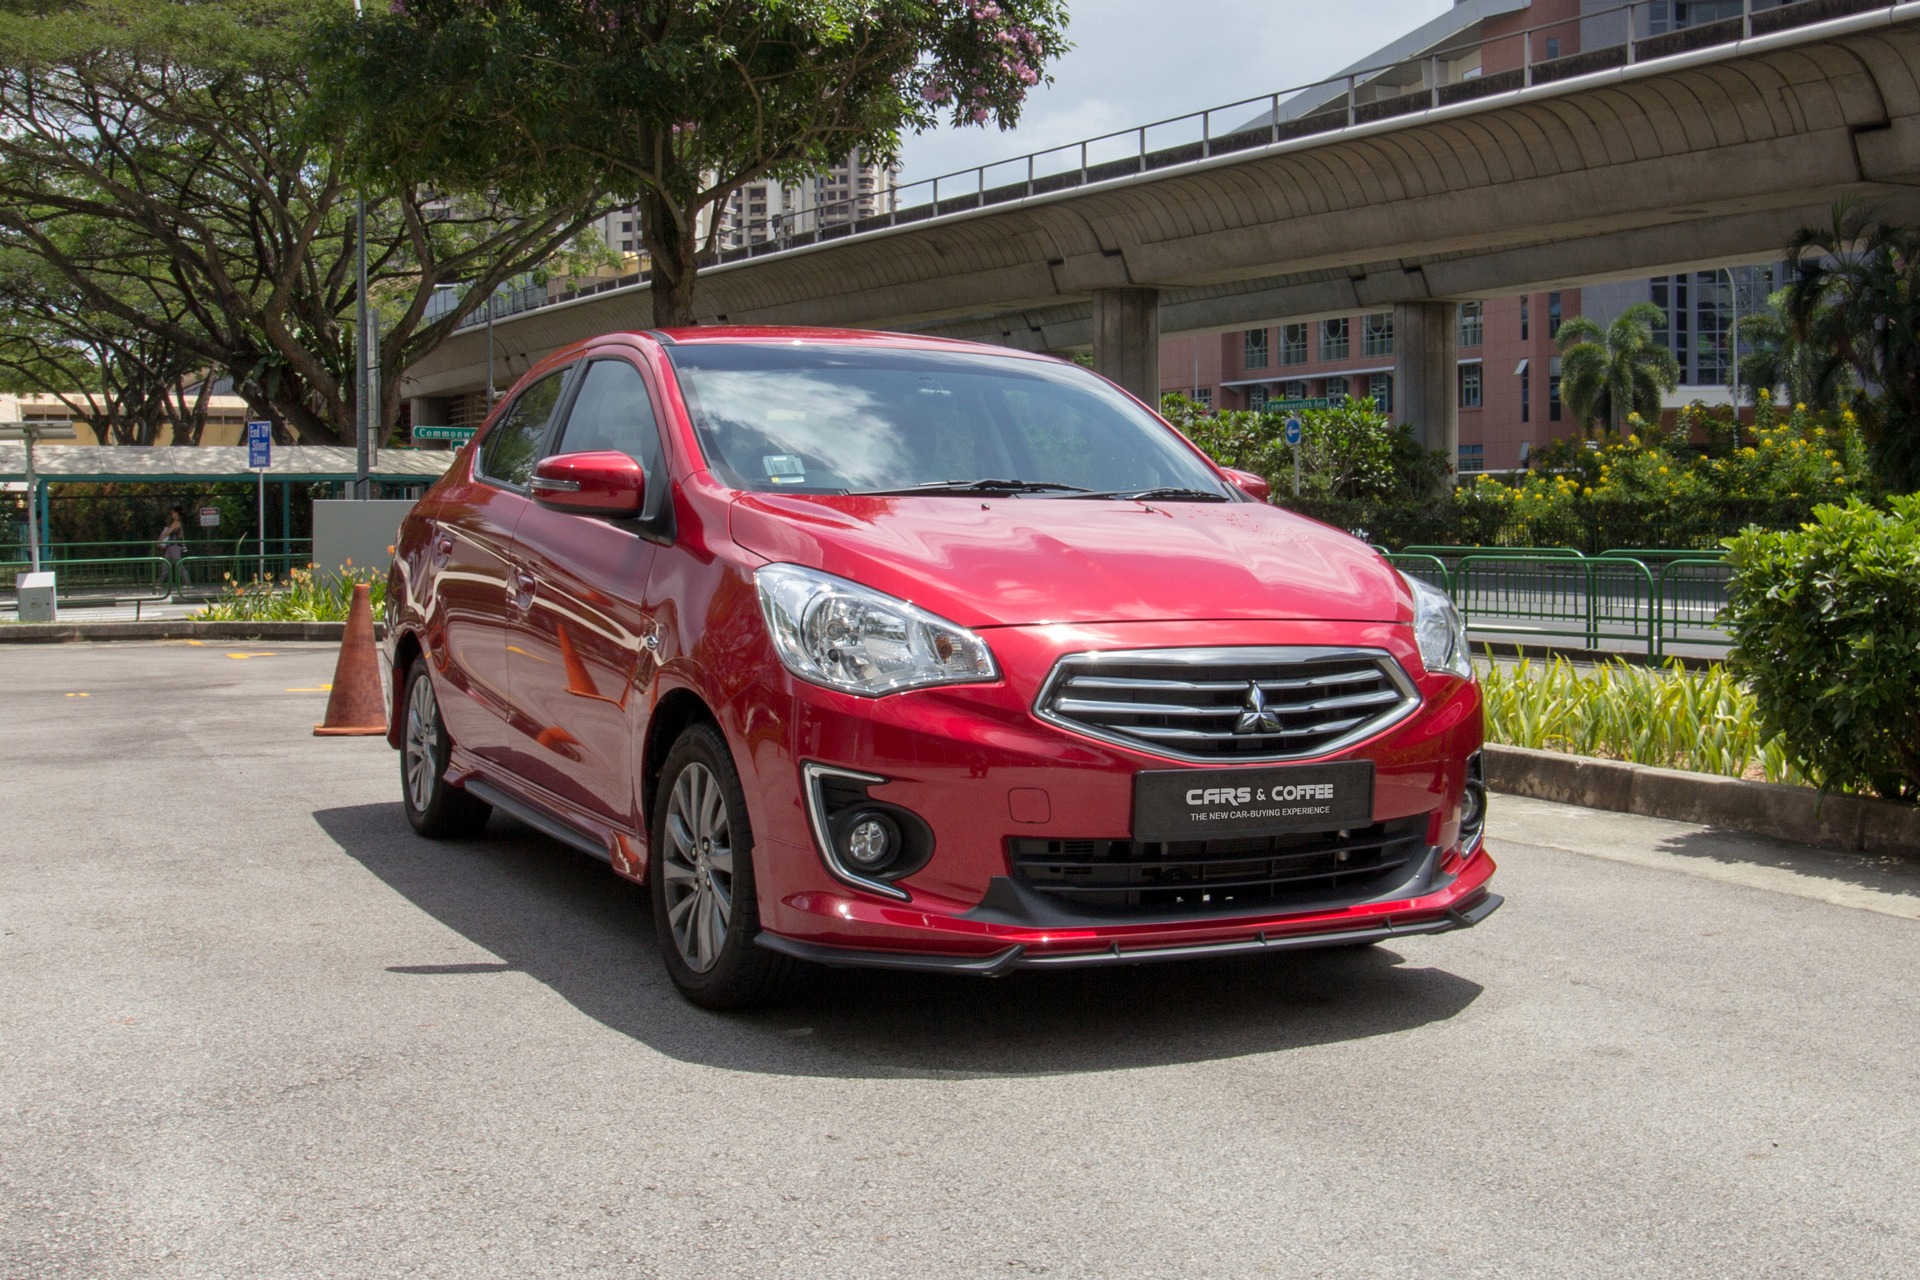 Certified Pre-Owned Mitsubishi Attrage 1.2A | Cars and Coffee Singapore